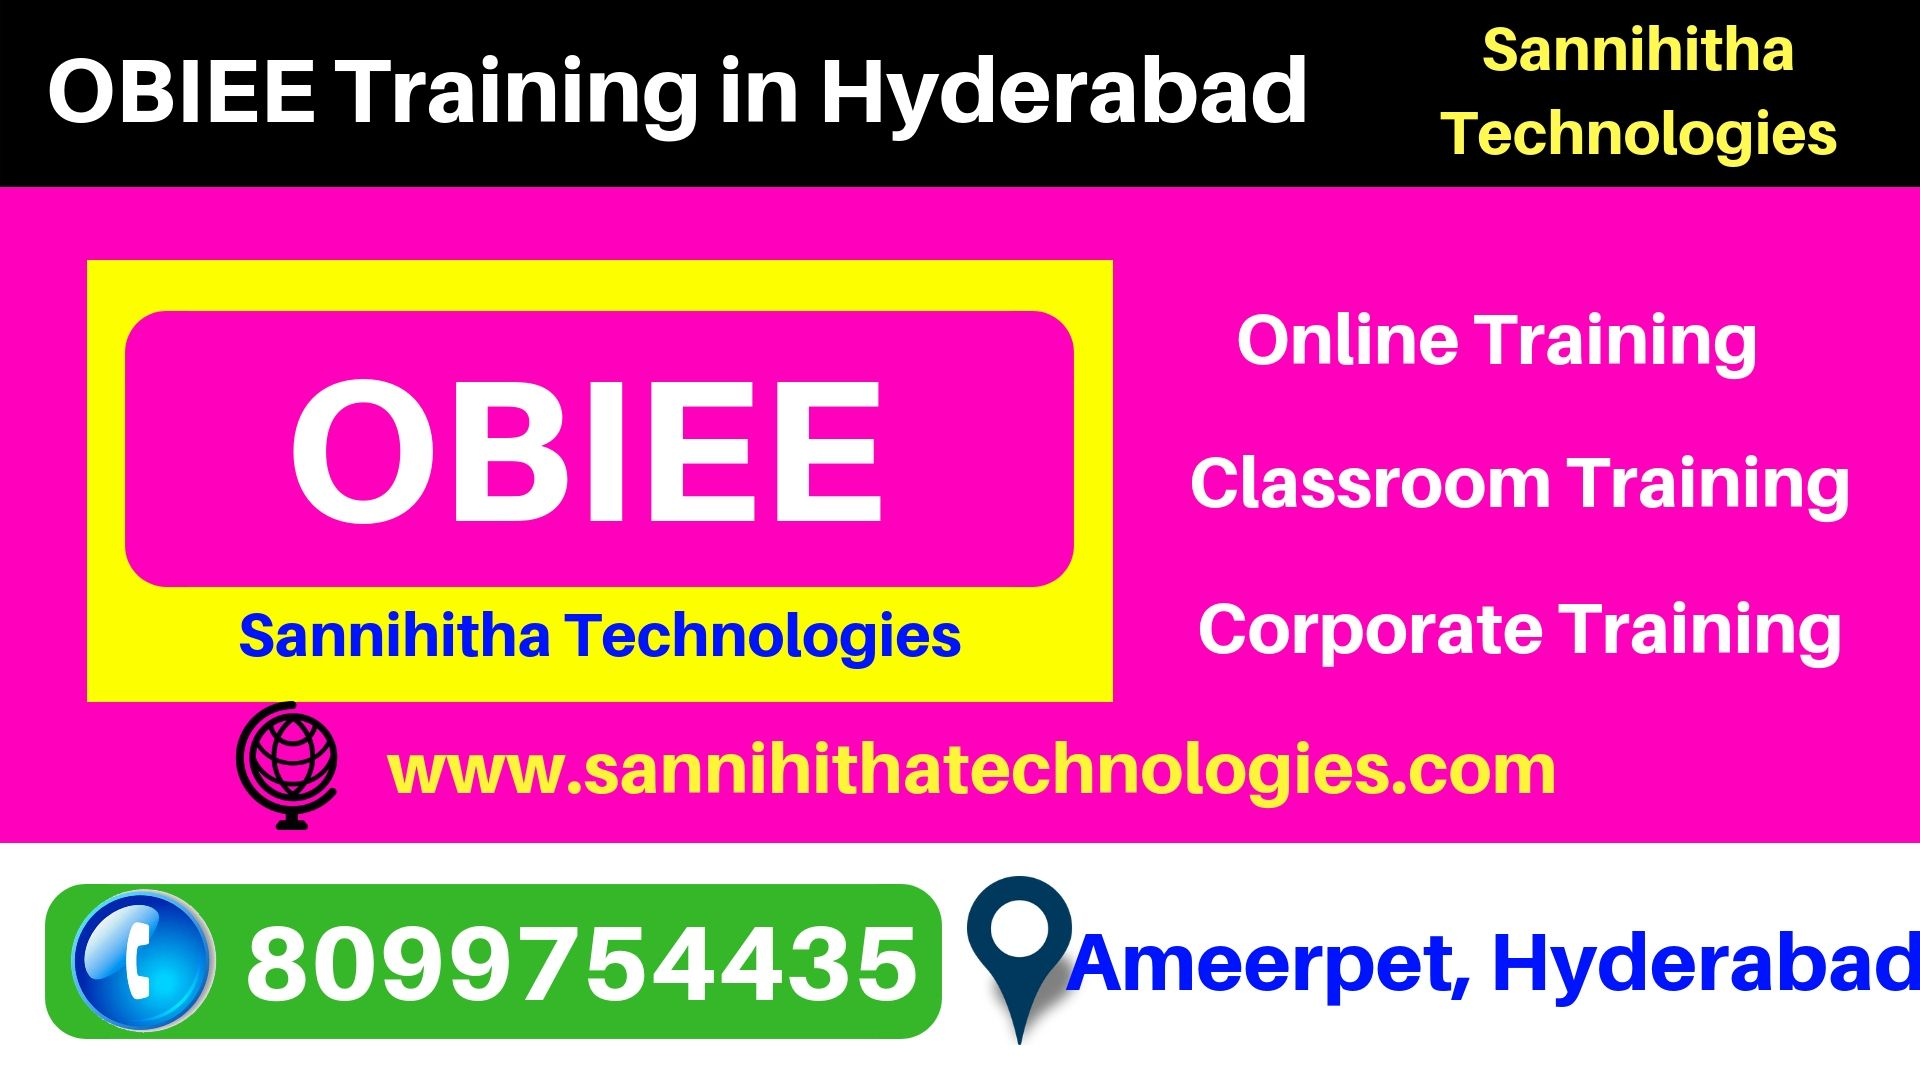 Best OBIEE training in Hyderabad, Ameerpet offers live